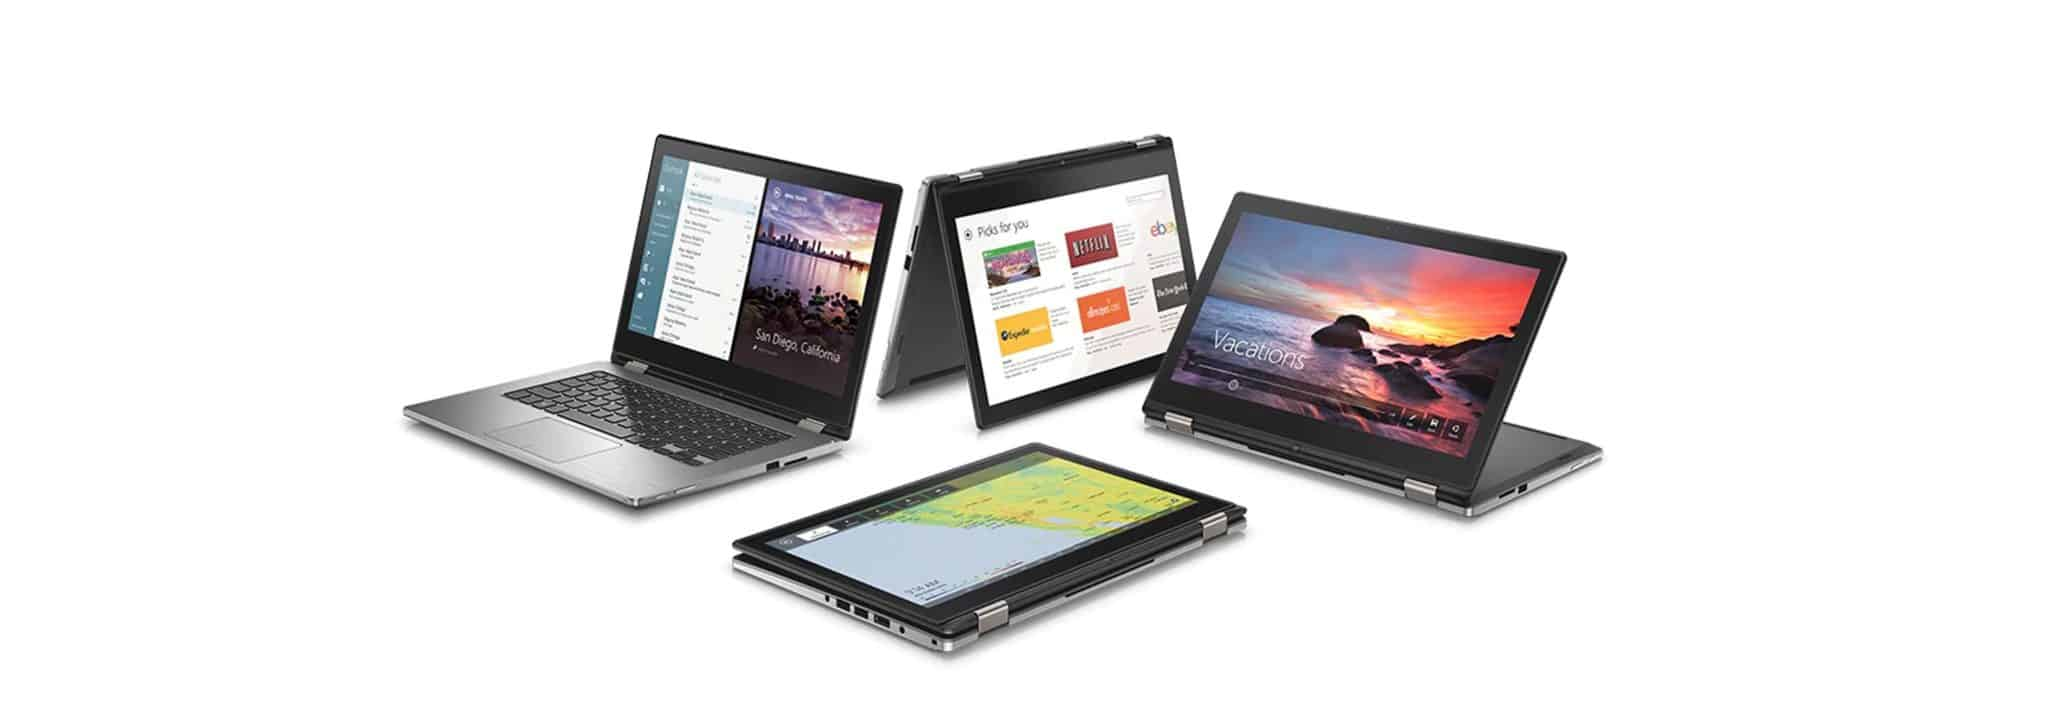 Inspiron 13 7000 Series 2-in-1 -7386